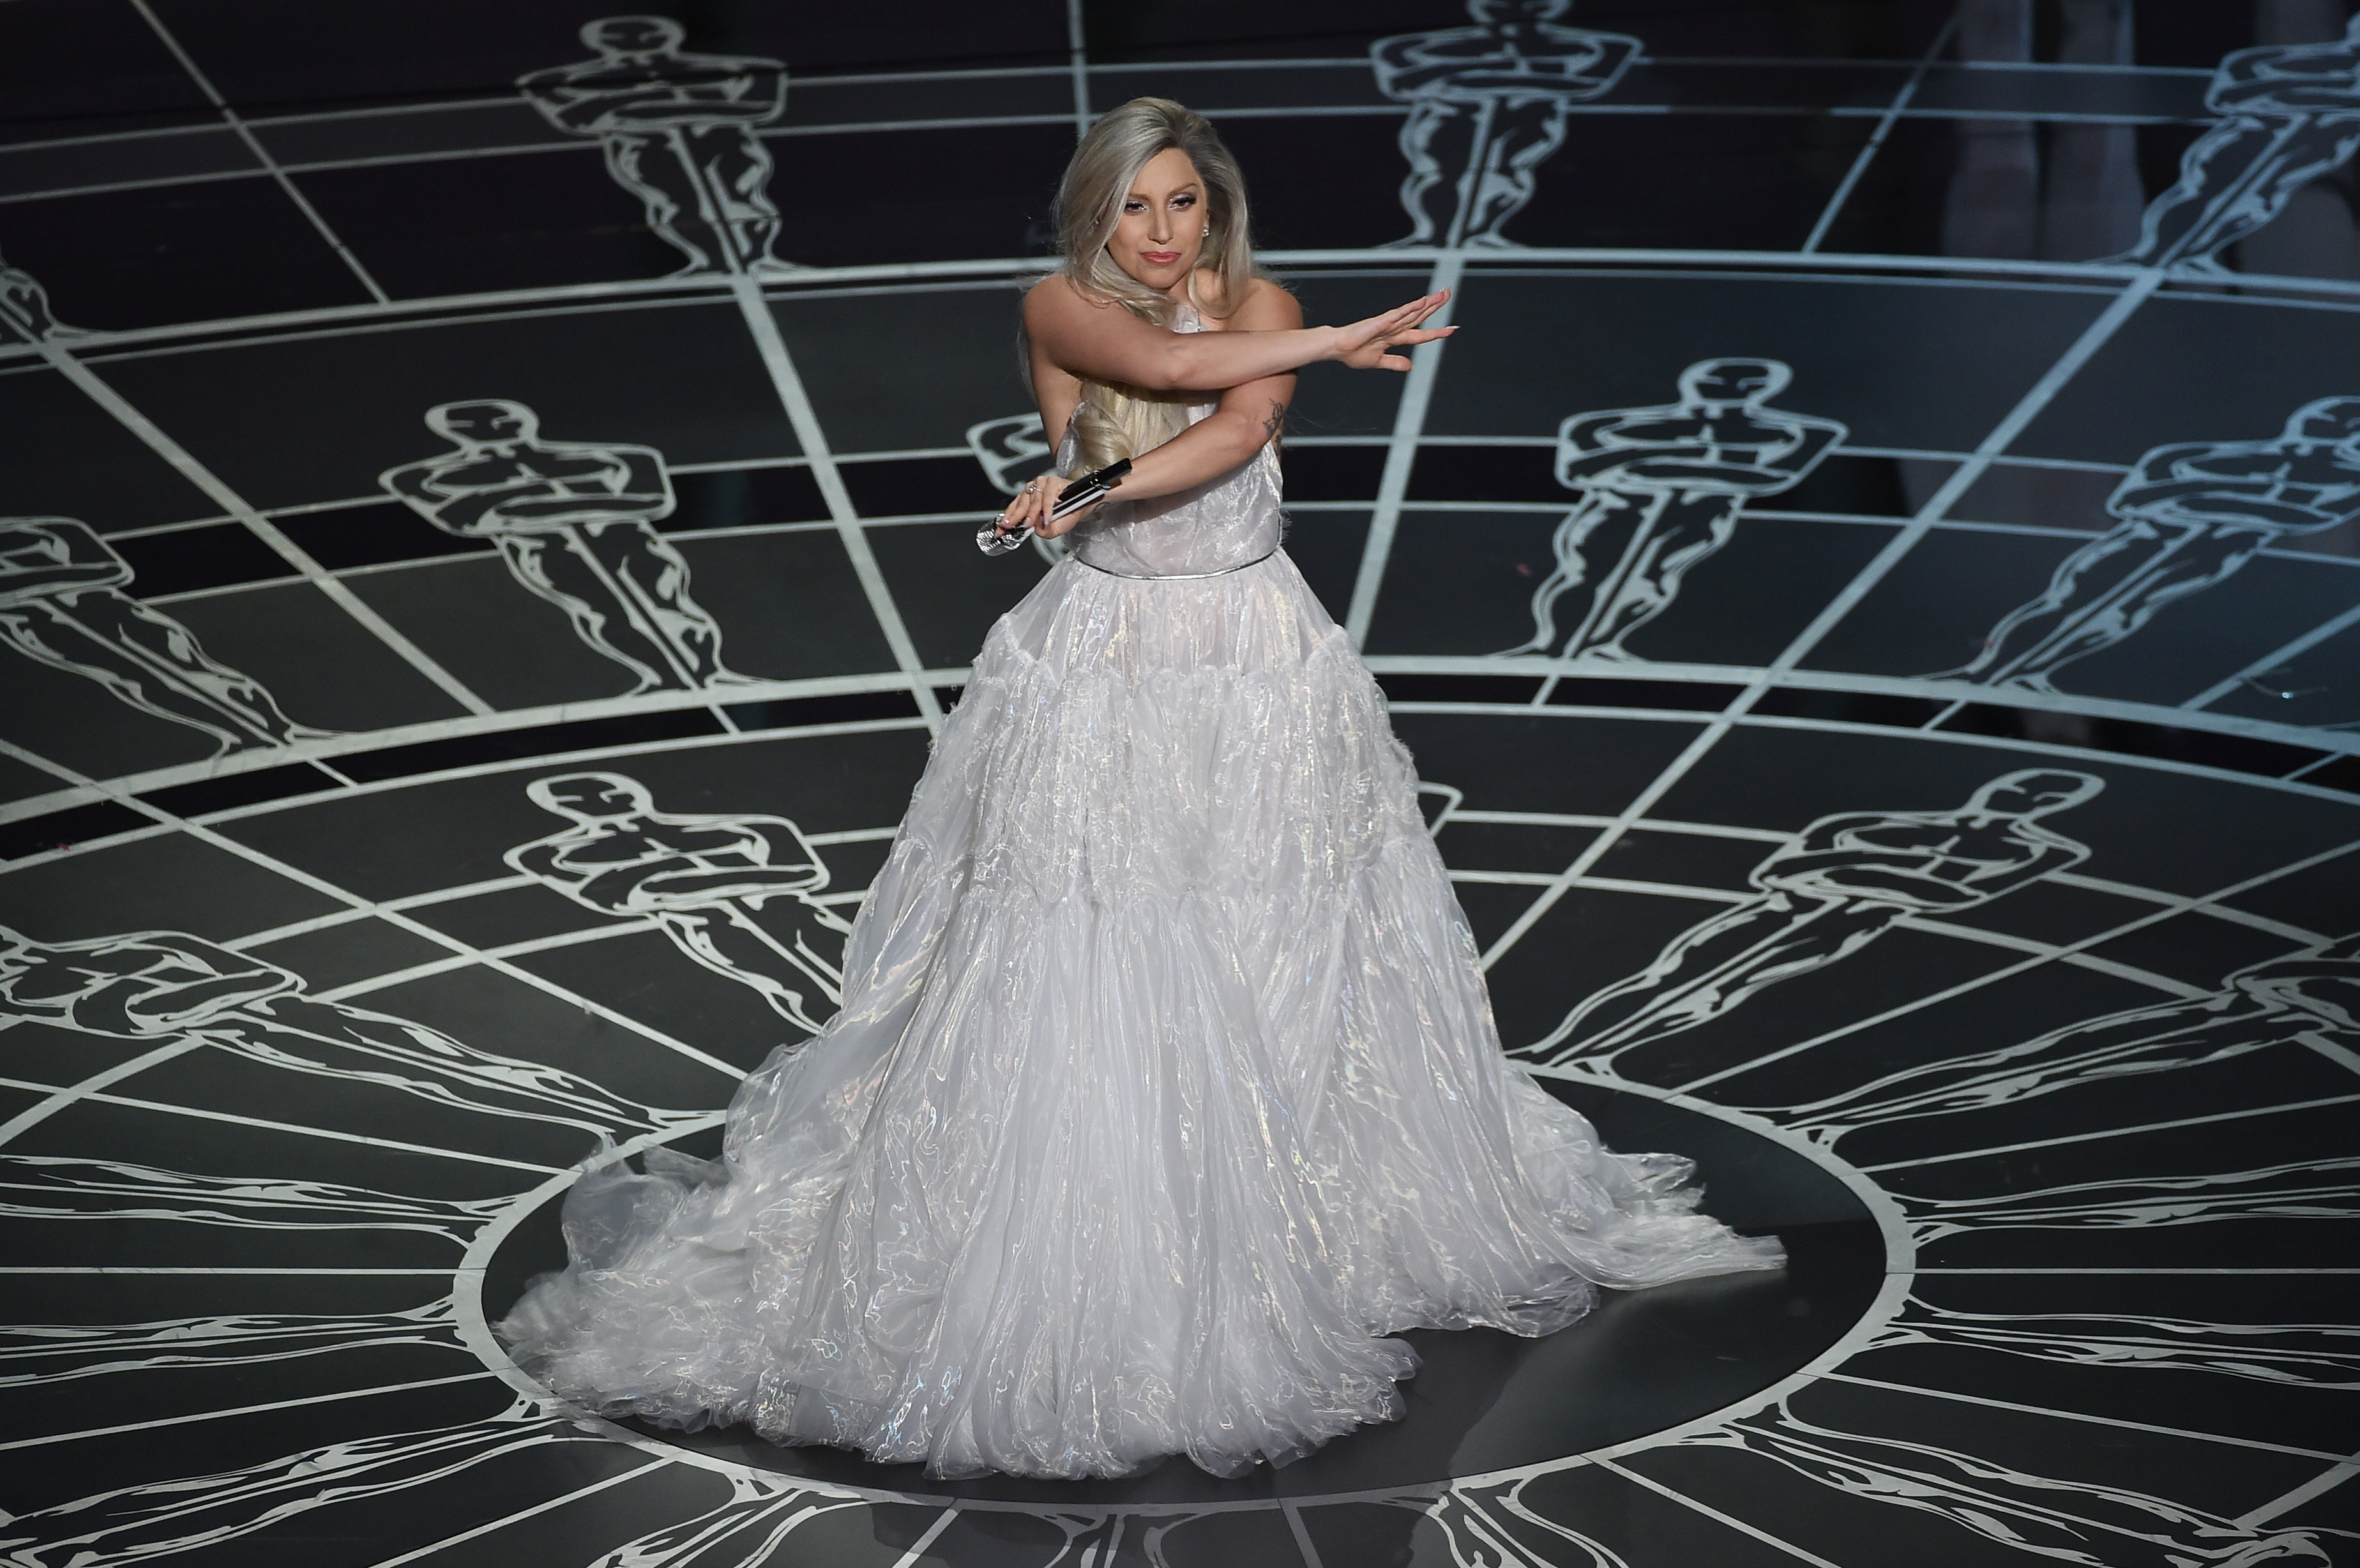 Lady Gaga performs onstage during the 87th Annual Academy Awards at Dolby Theatre on February 22, 2015 in Hollywood, California.